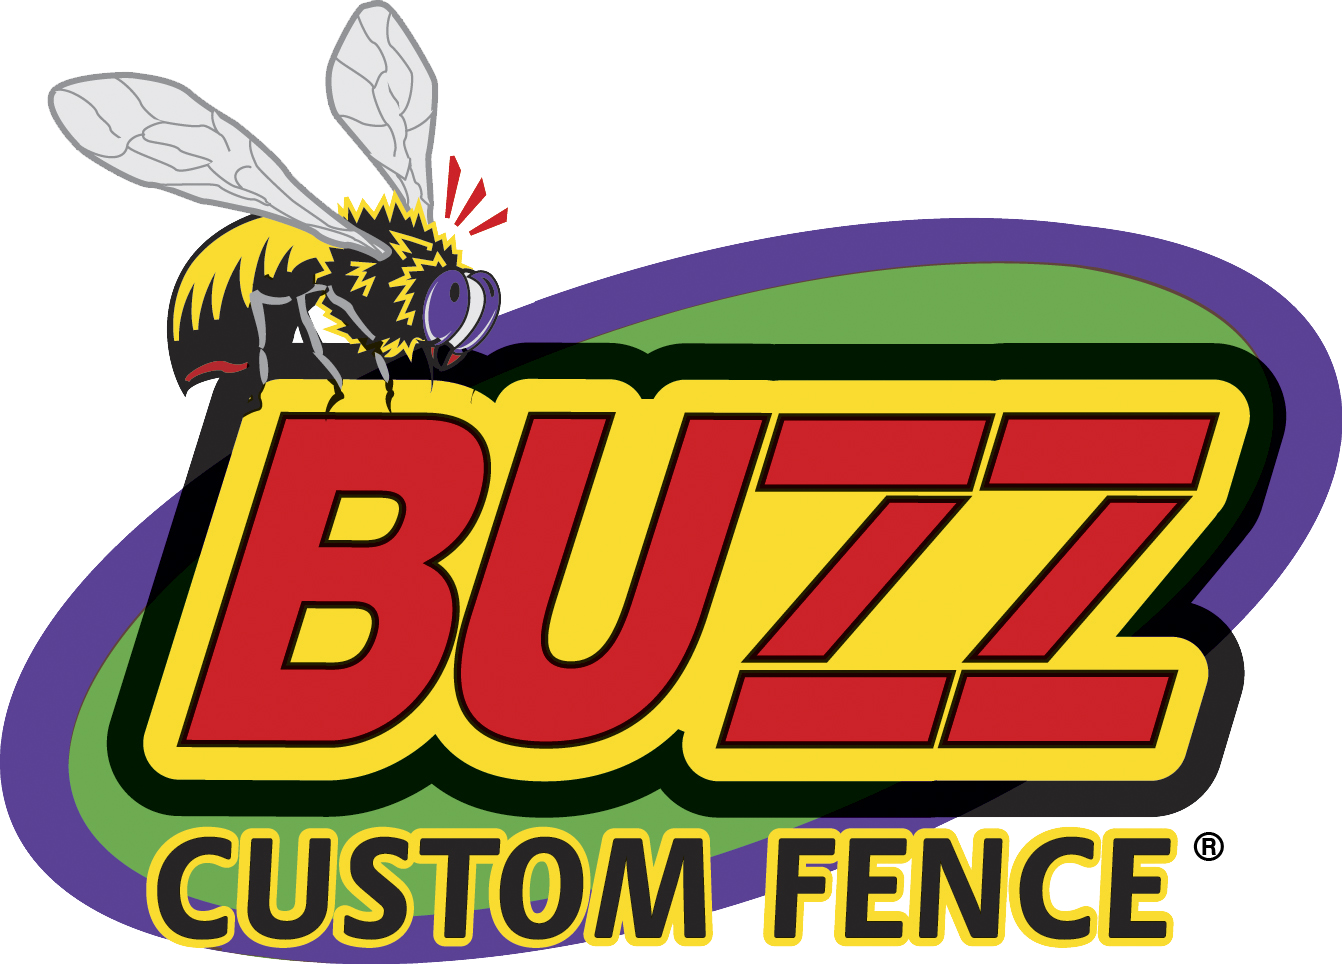 Buzz Custom Fence